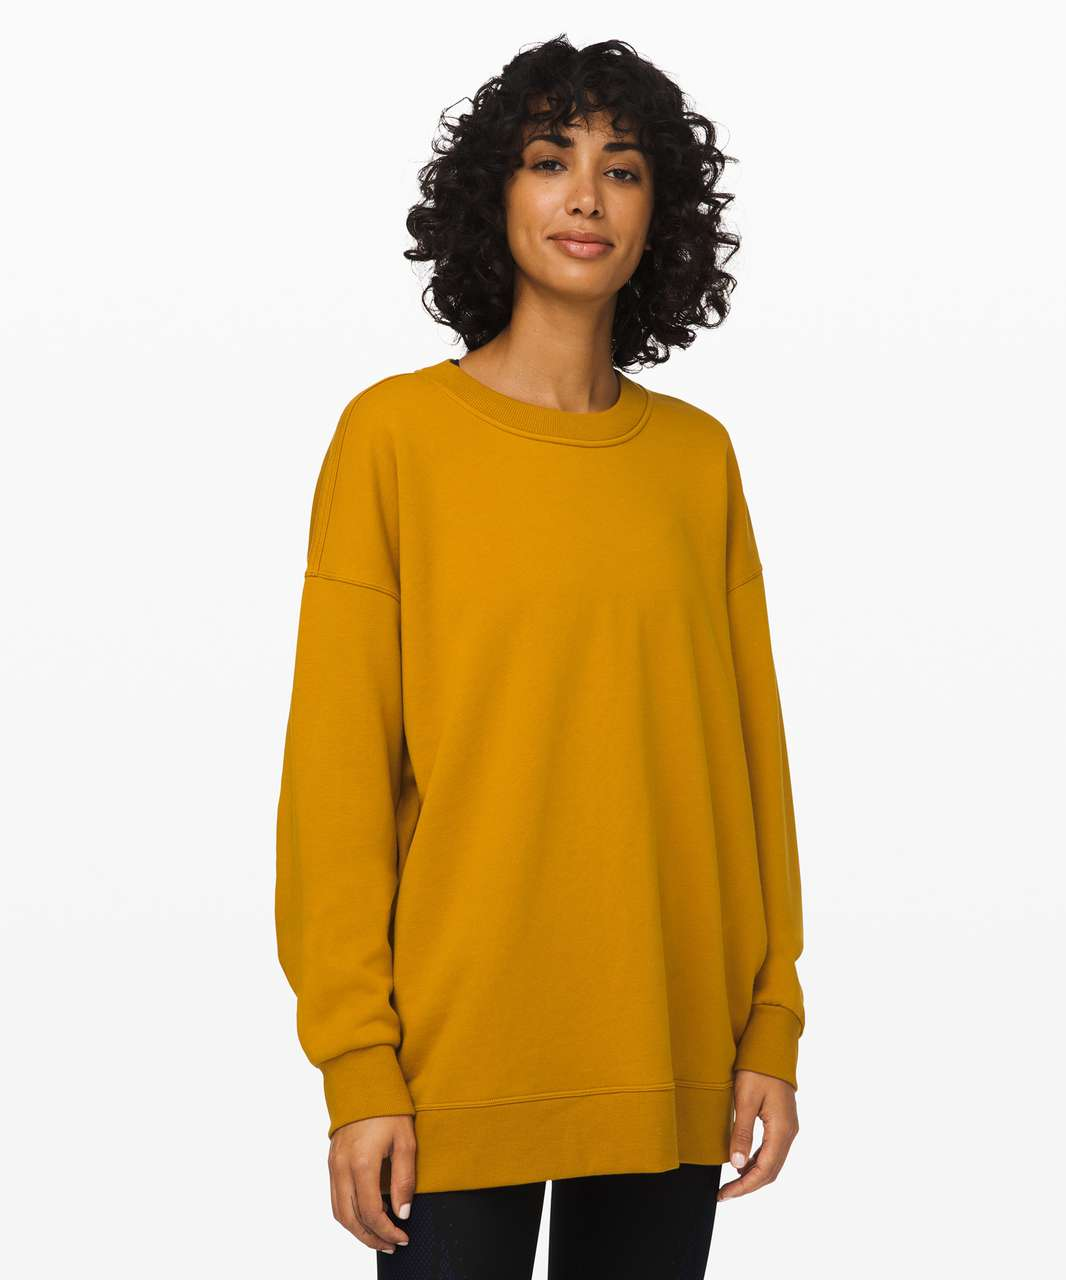 Lululemon Perfectly Oversized Crew - Fools Gold